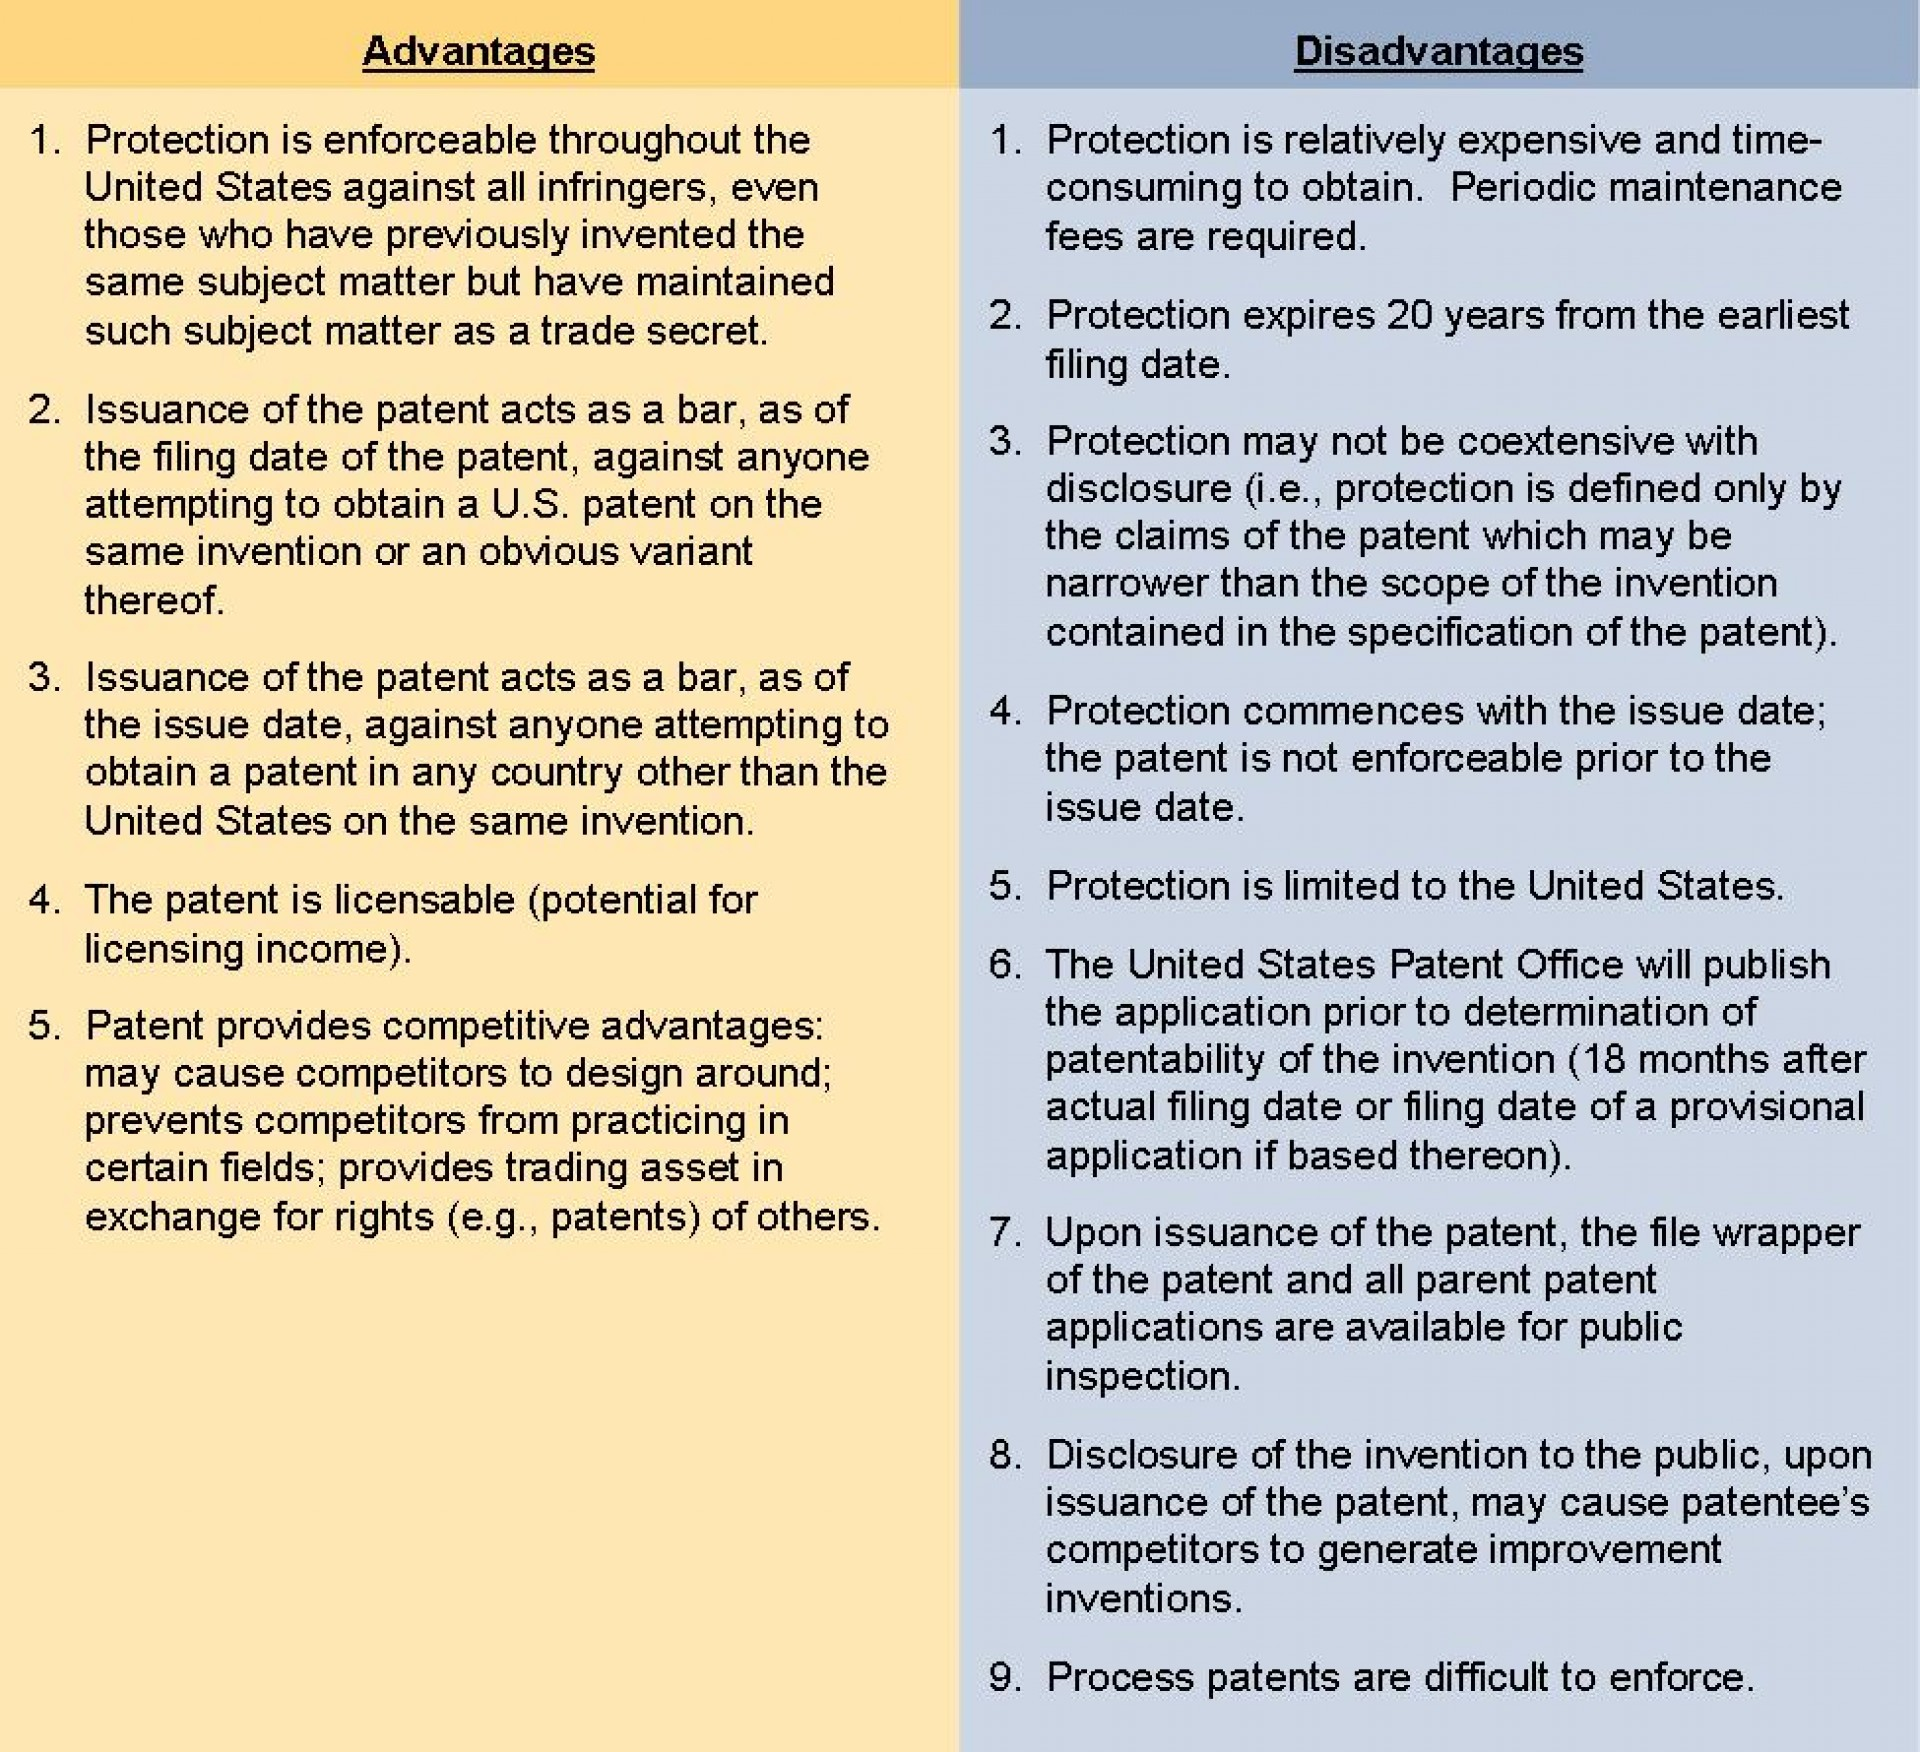 027 News87pic2 Advantage And Disadvantage Of Science Essay Shocking Advantages Disadvantages In Tamil Pdf 1920